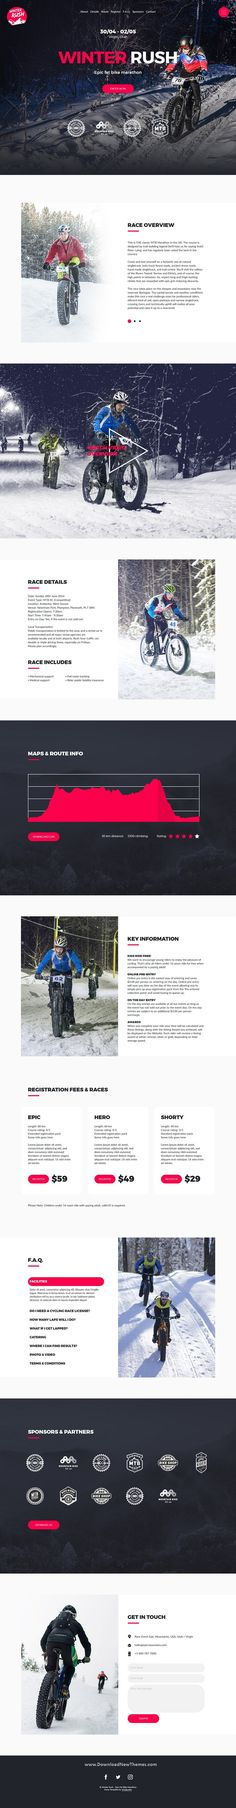 Cyclent is a clean, elegant and modern design responsive premium Muse template for mountain bike or cycling events professional one page website. Its perfect for cross country, marathon, short track or any other type of race site to download now & live preview click on image 👆 webdesigns uidesign uxdesign websitetemplate webistelayout musetemplate adobewebsite cyclingevents eventswebsite bikeevents